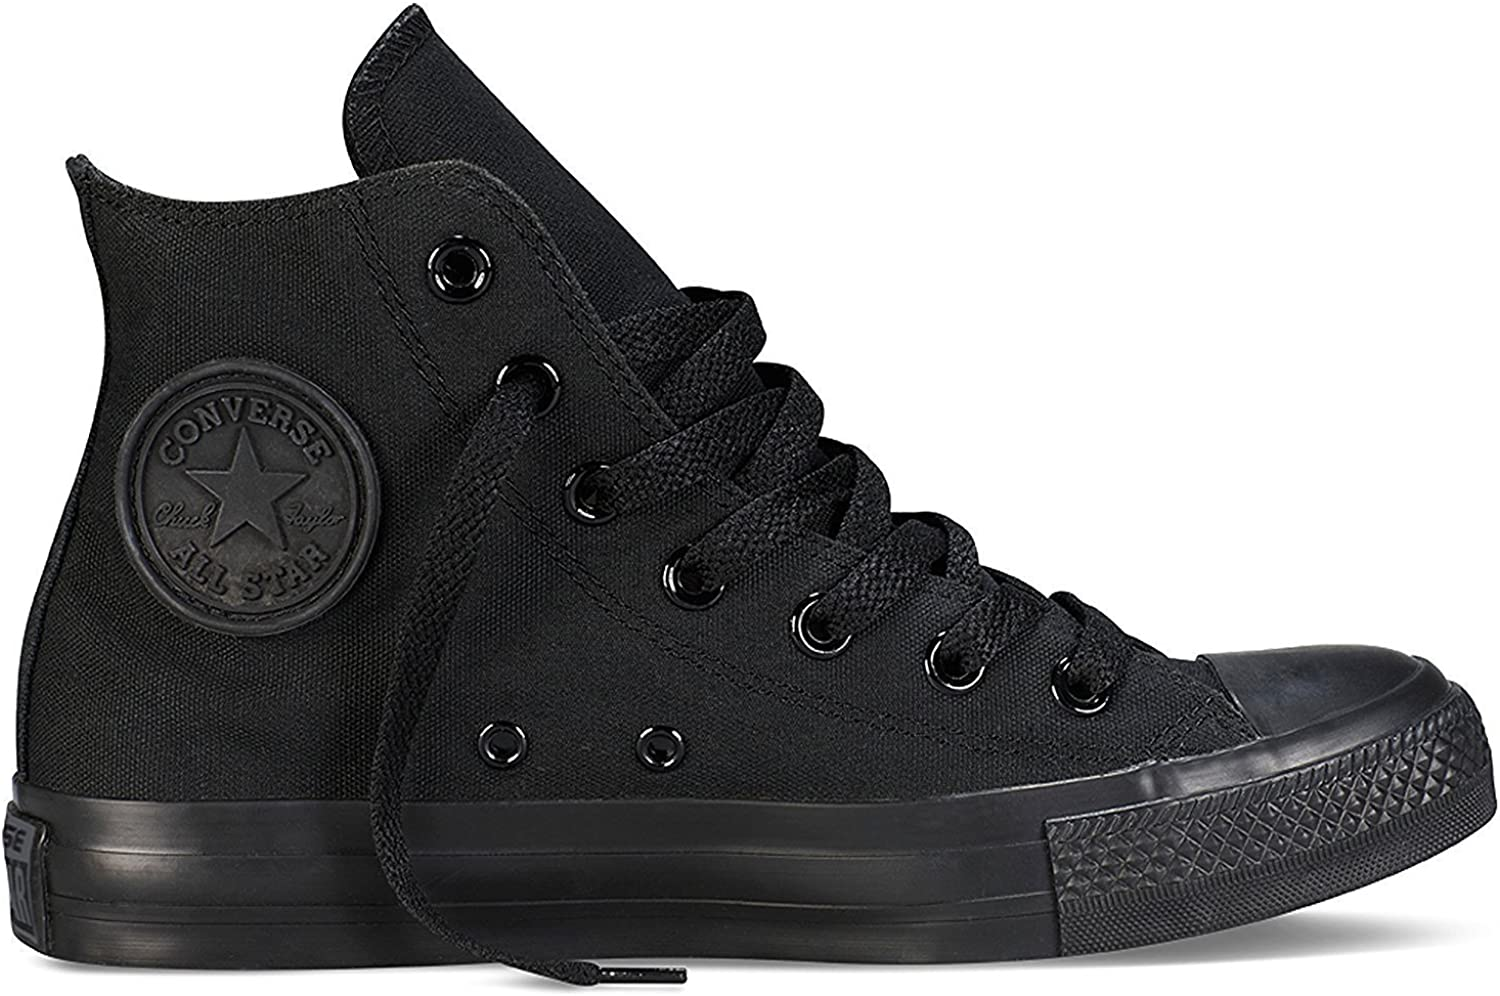 Converse Unisex Chuck Taylor All Star High Top Sneakers (8 D(M) US, Black Monochrome)